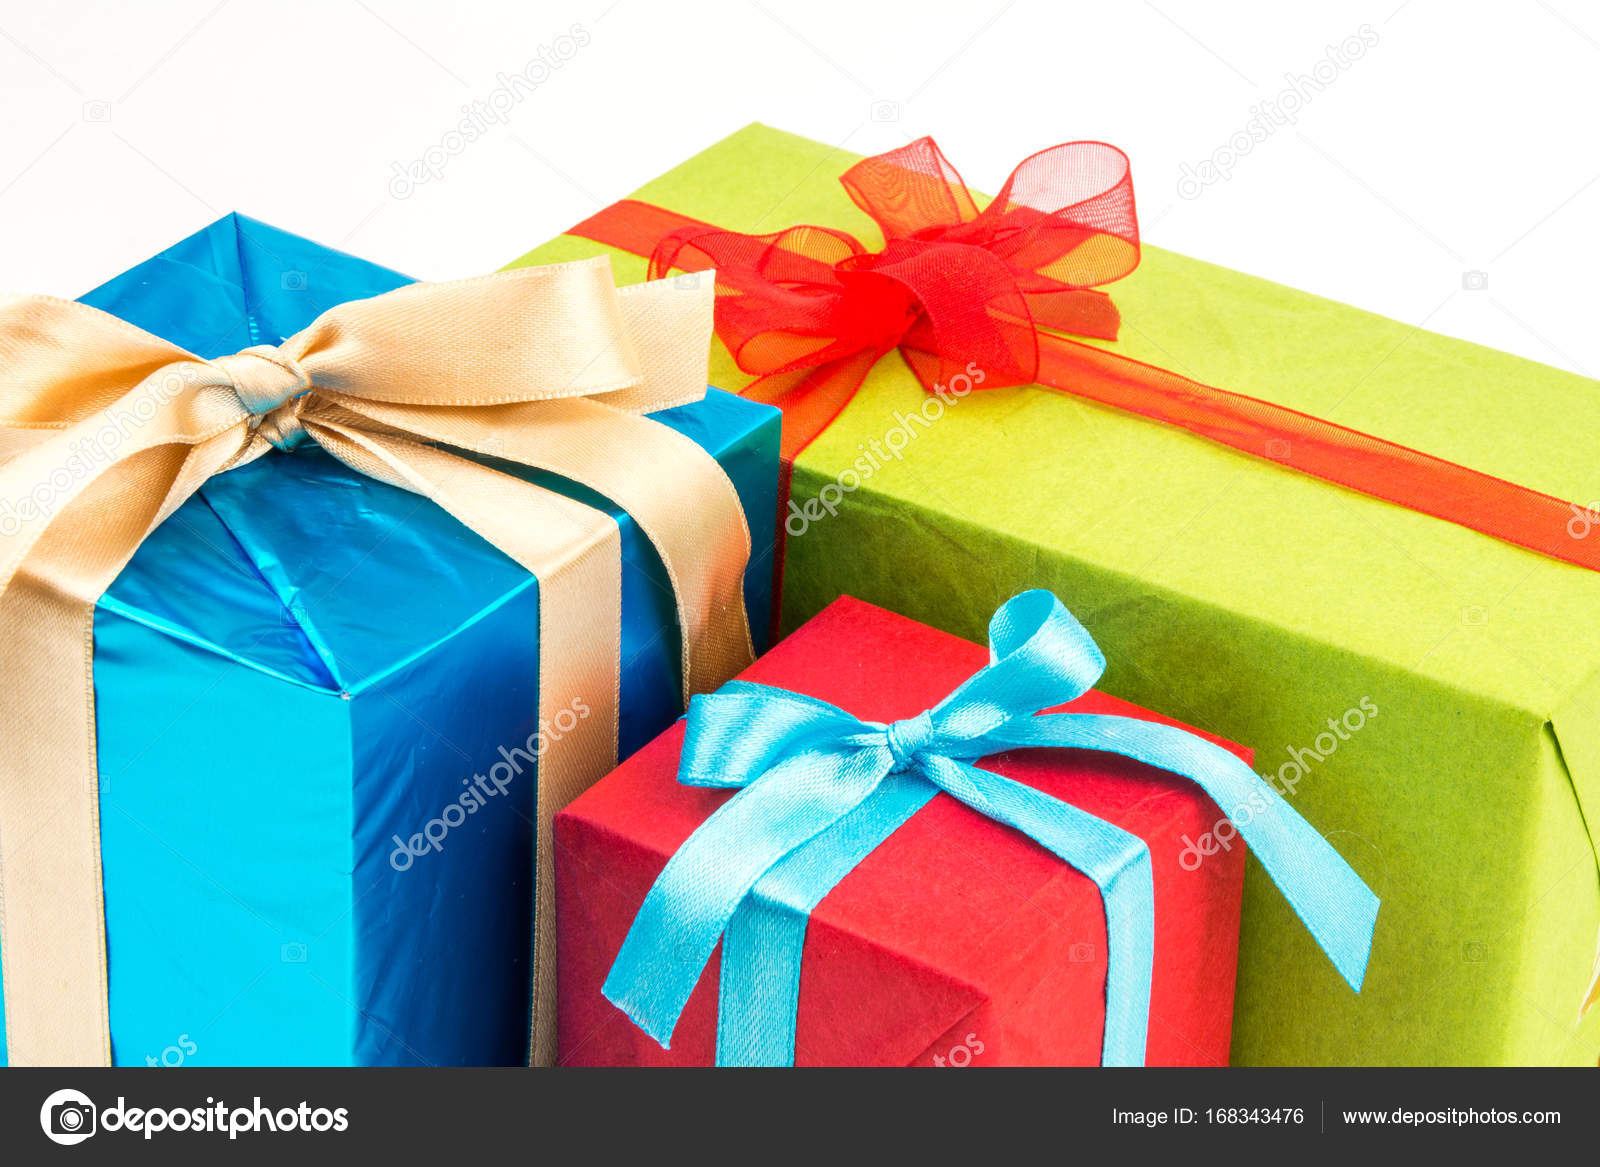 Big Pile Of Colorful Wrapped Gift Boxes Isolated On White Background